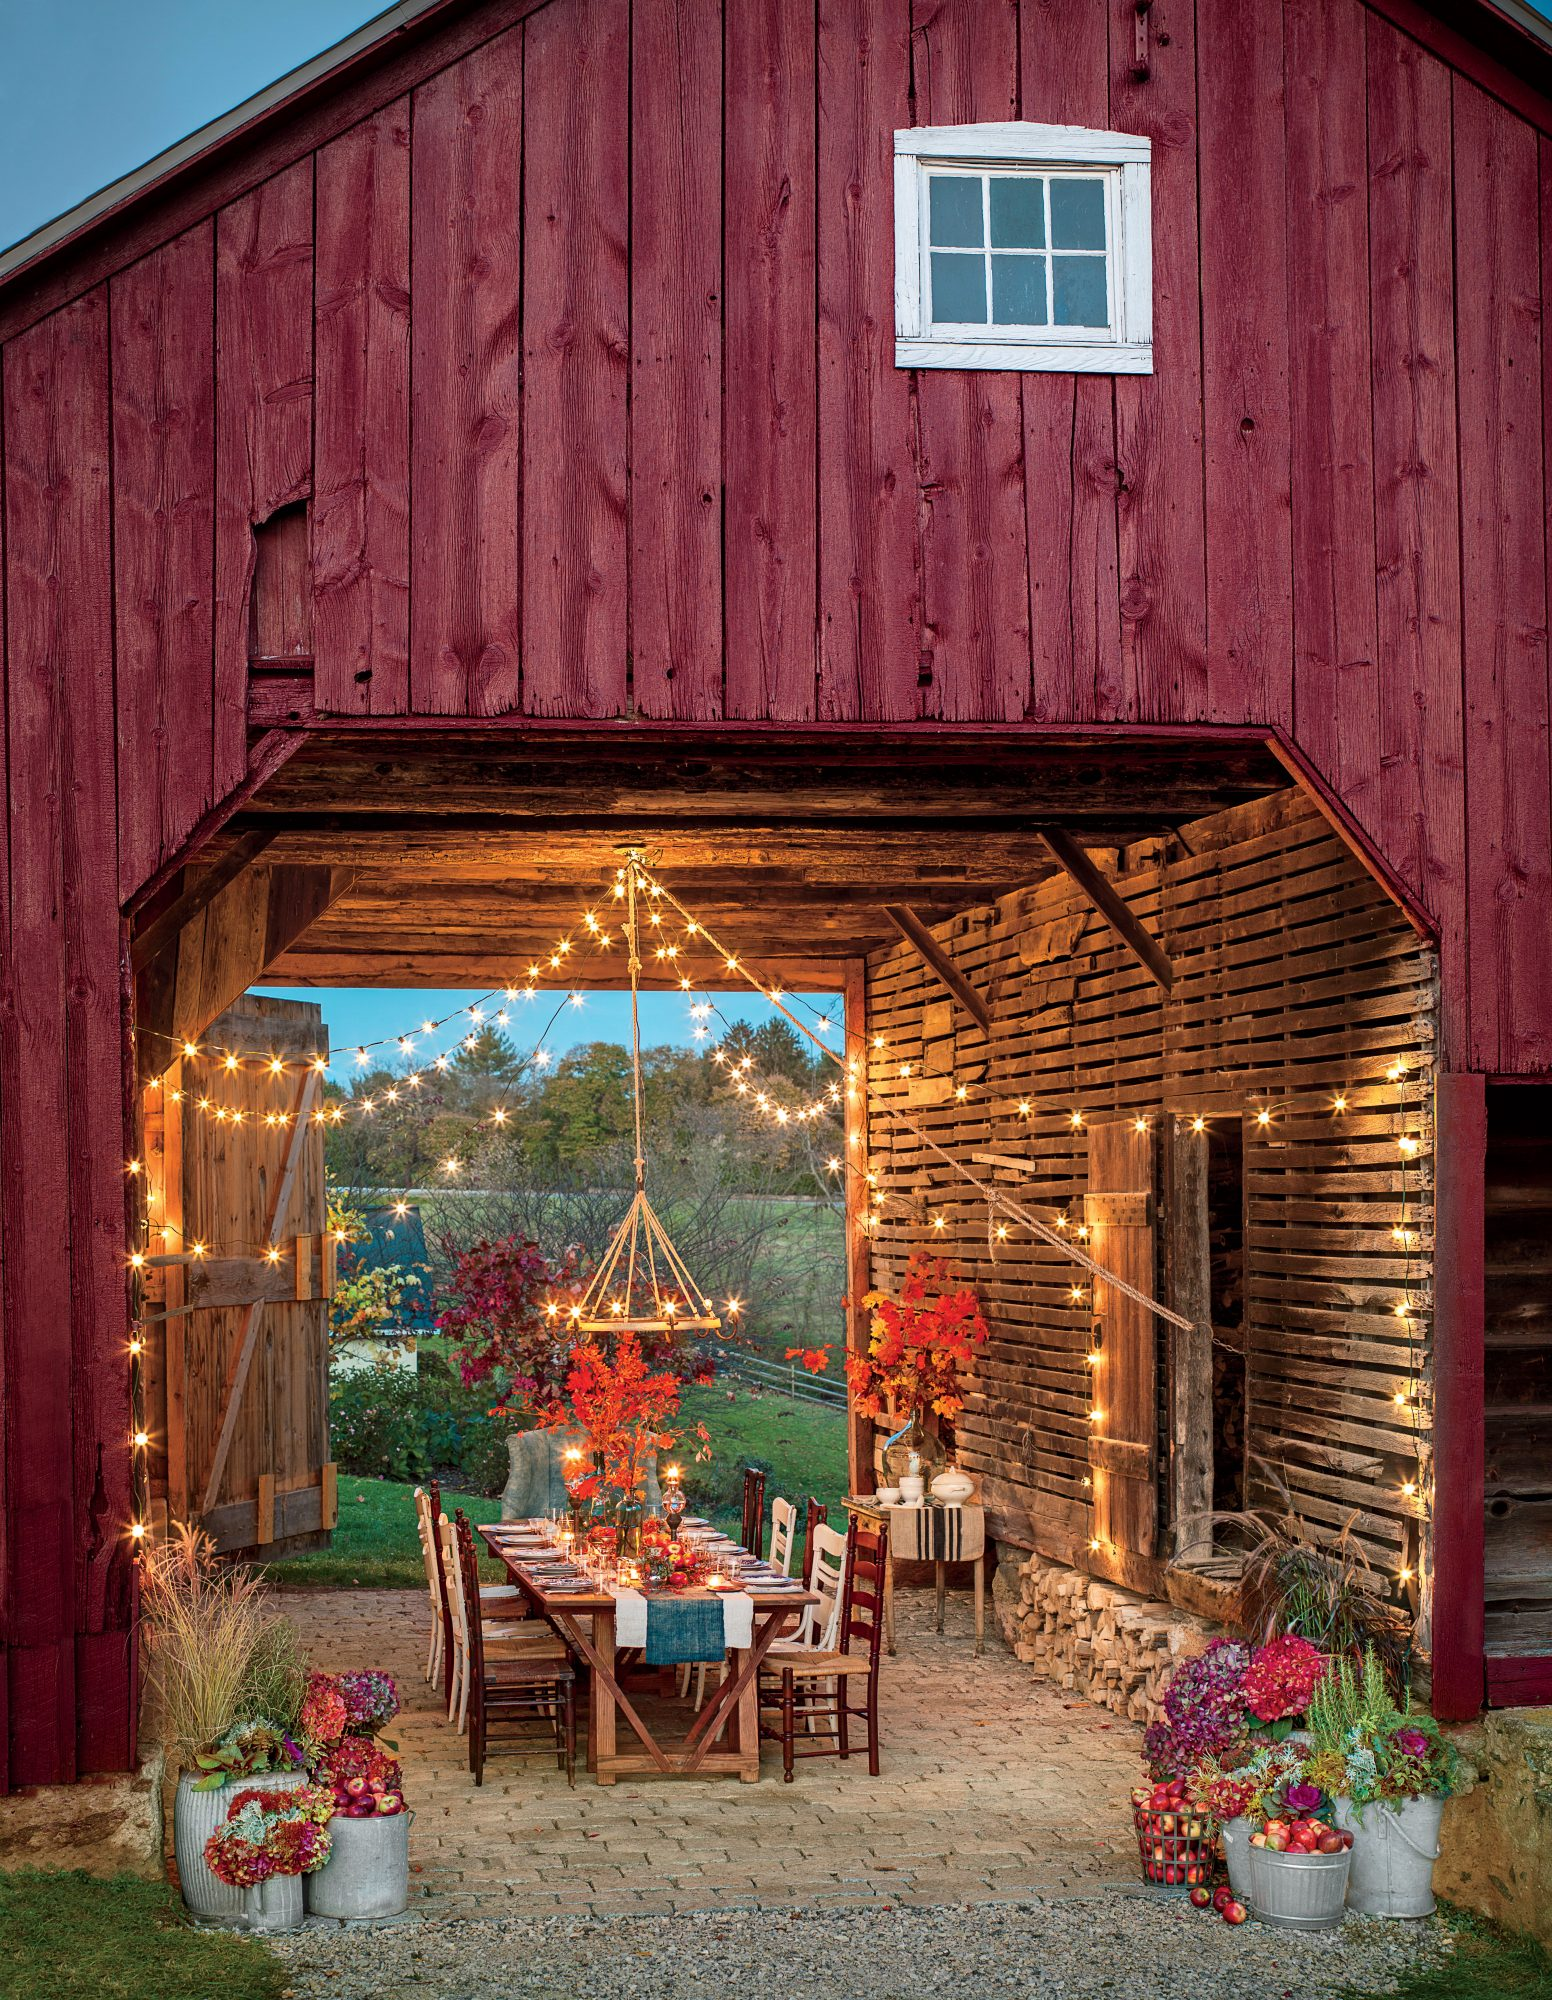 25 Beautiful Outdoor Room Ideas for Fall and Beyond ... on Beautiful Outdoor Living Spaces id=12035